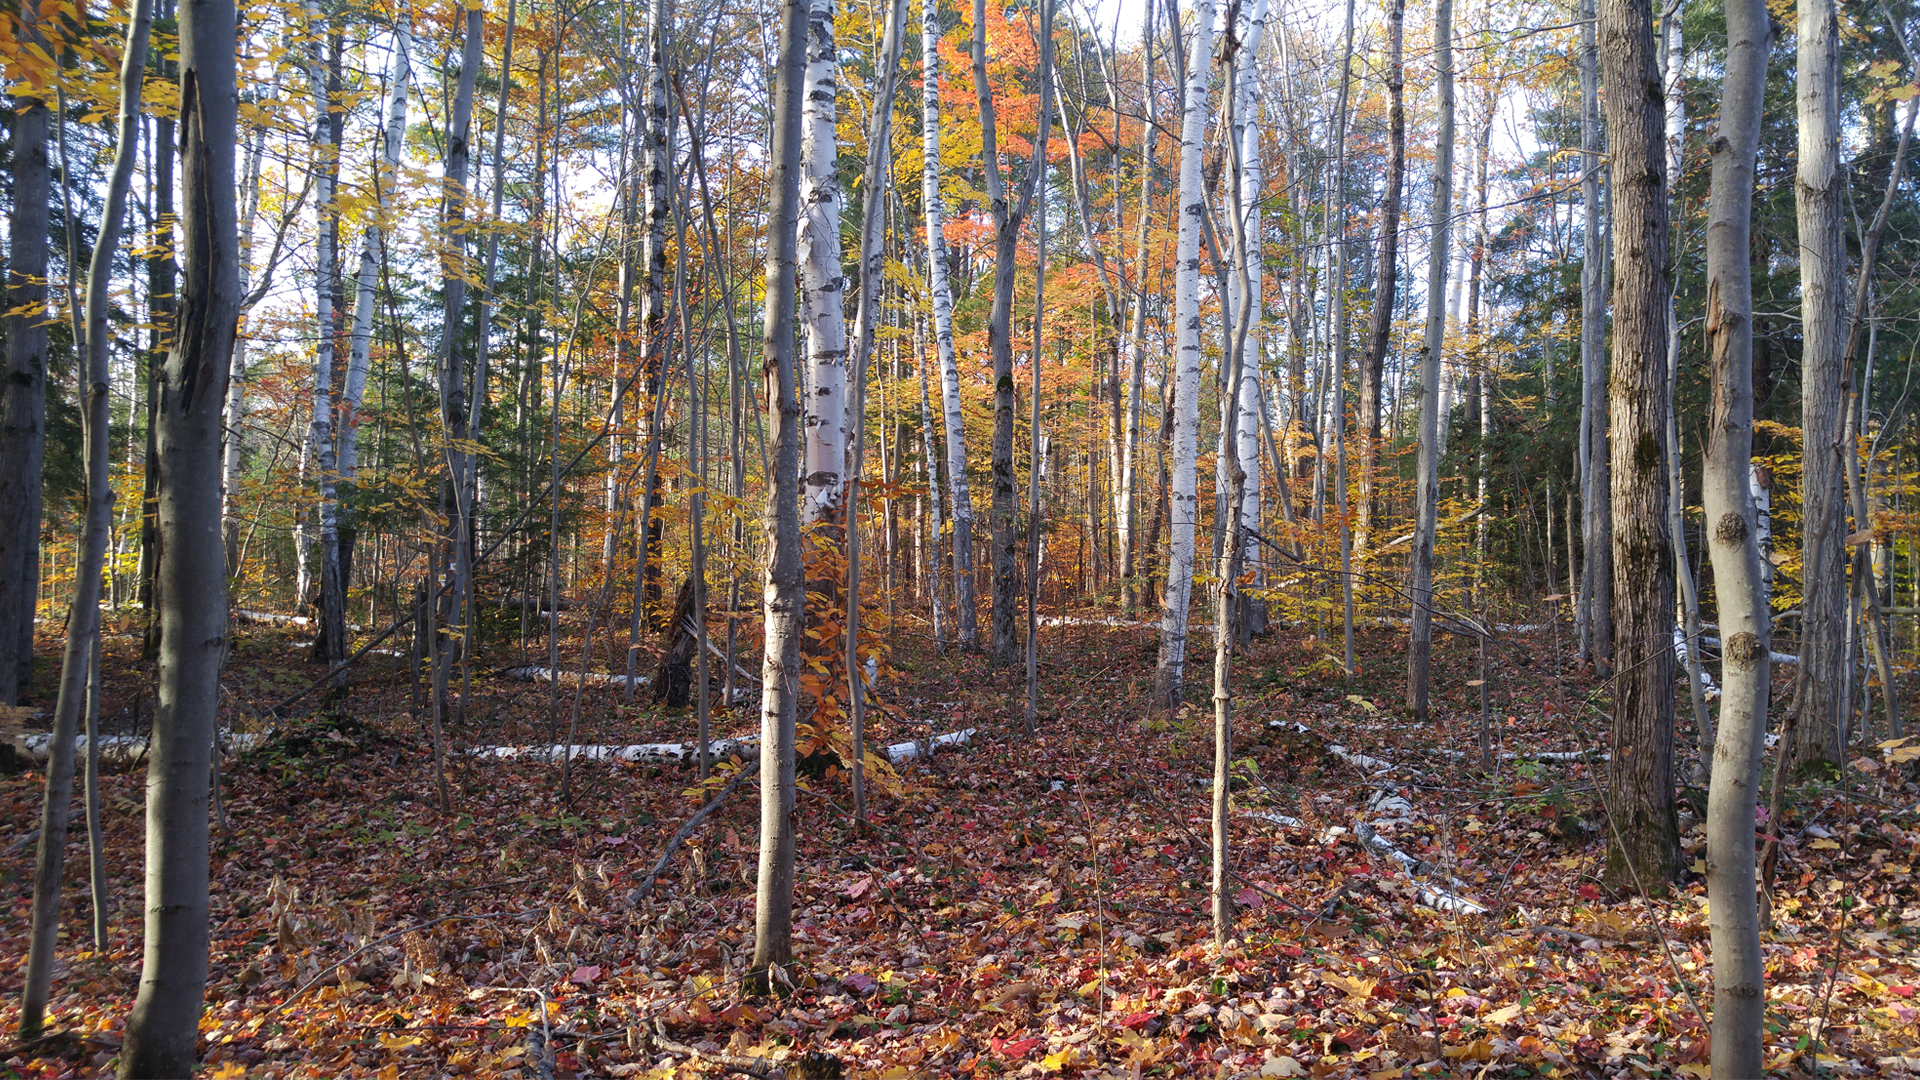 grants woods - THE MOST INSTAGRAMMABLE LOCATIONS THIS FALL